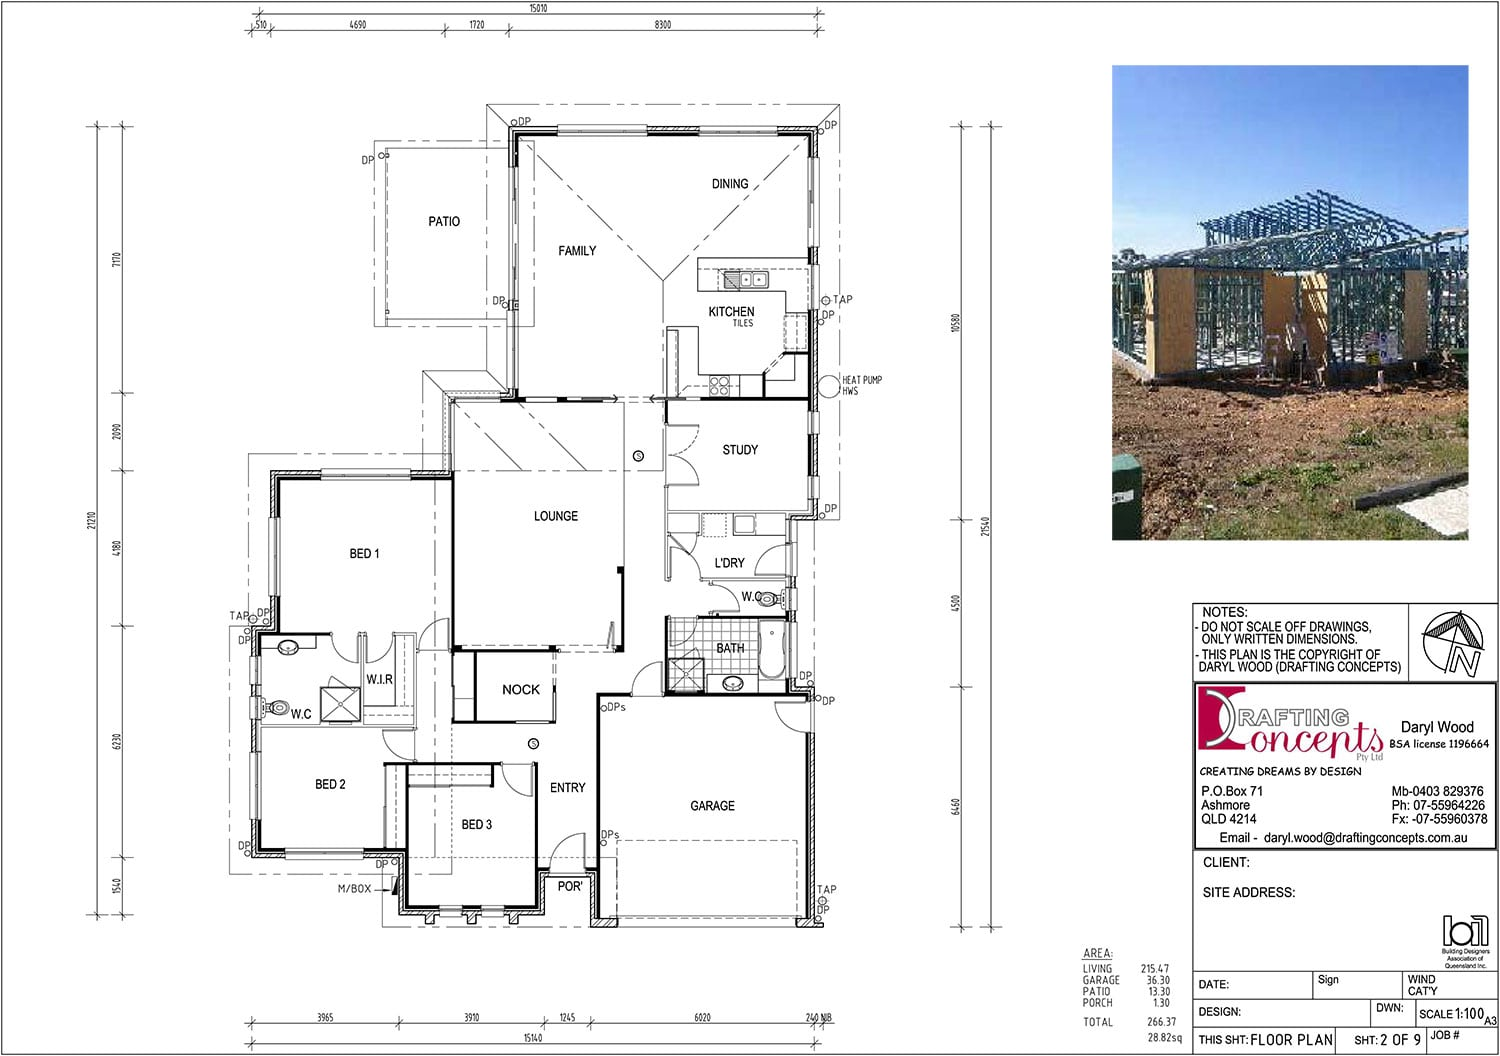 portfolio drafting concepts drafting services sunshine On floor design contractors bolton